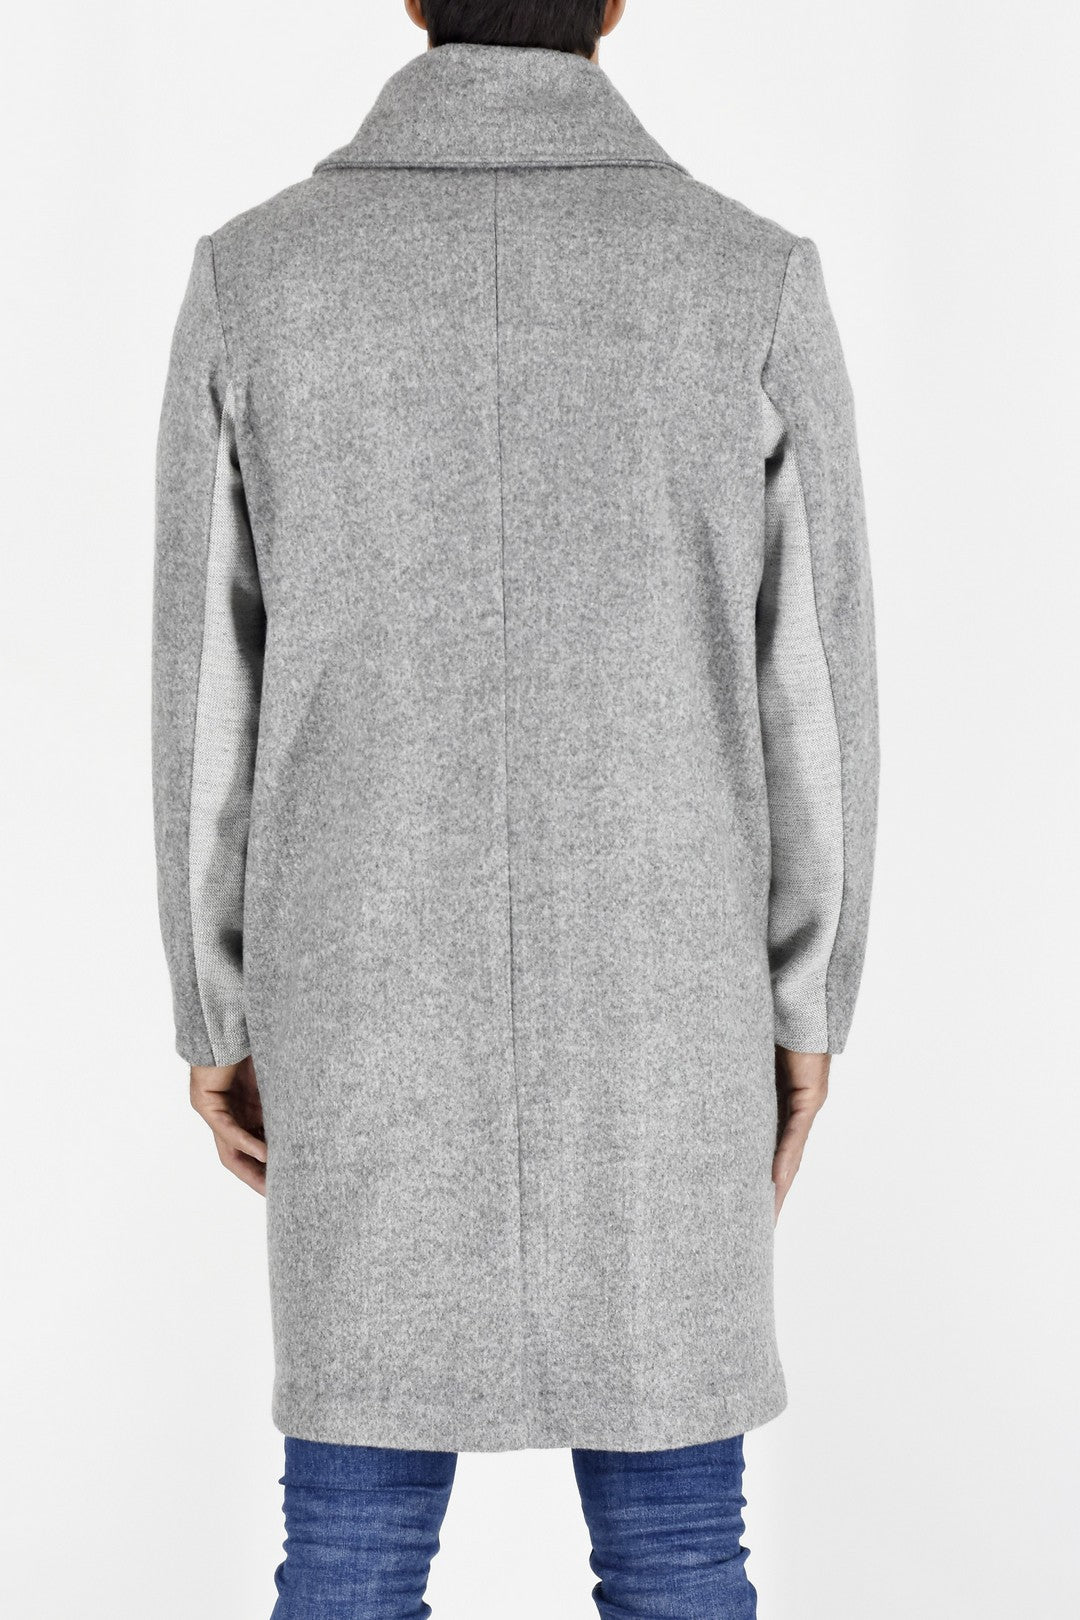 Mens Coat in Light Grey Wool Melton ZG5201